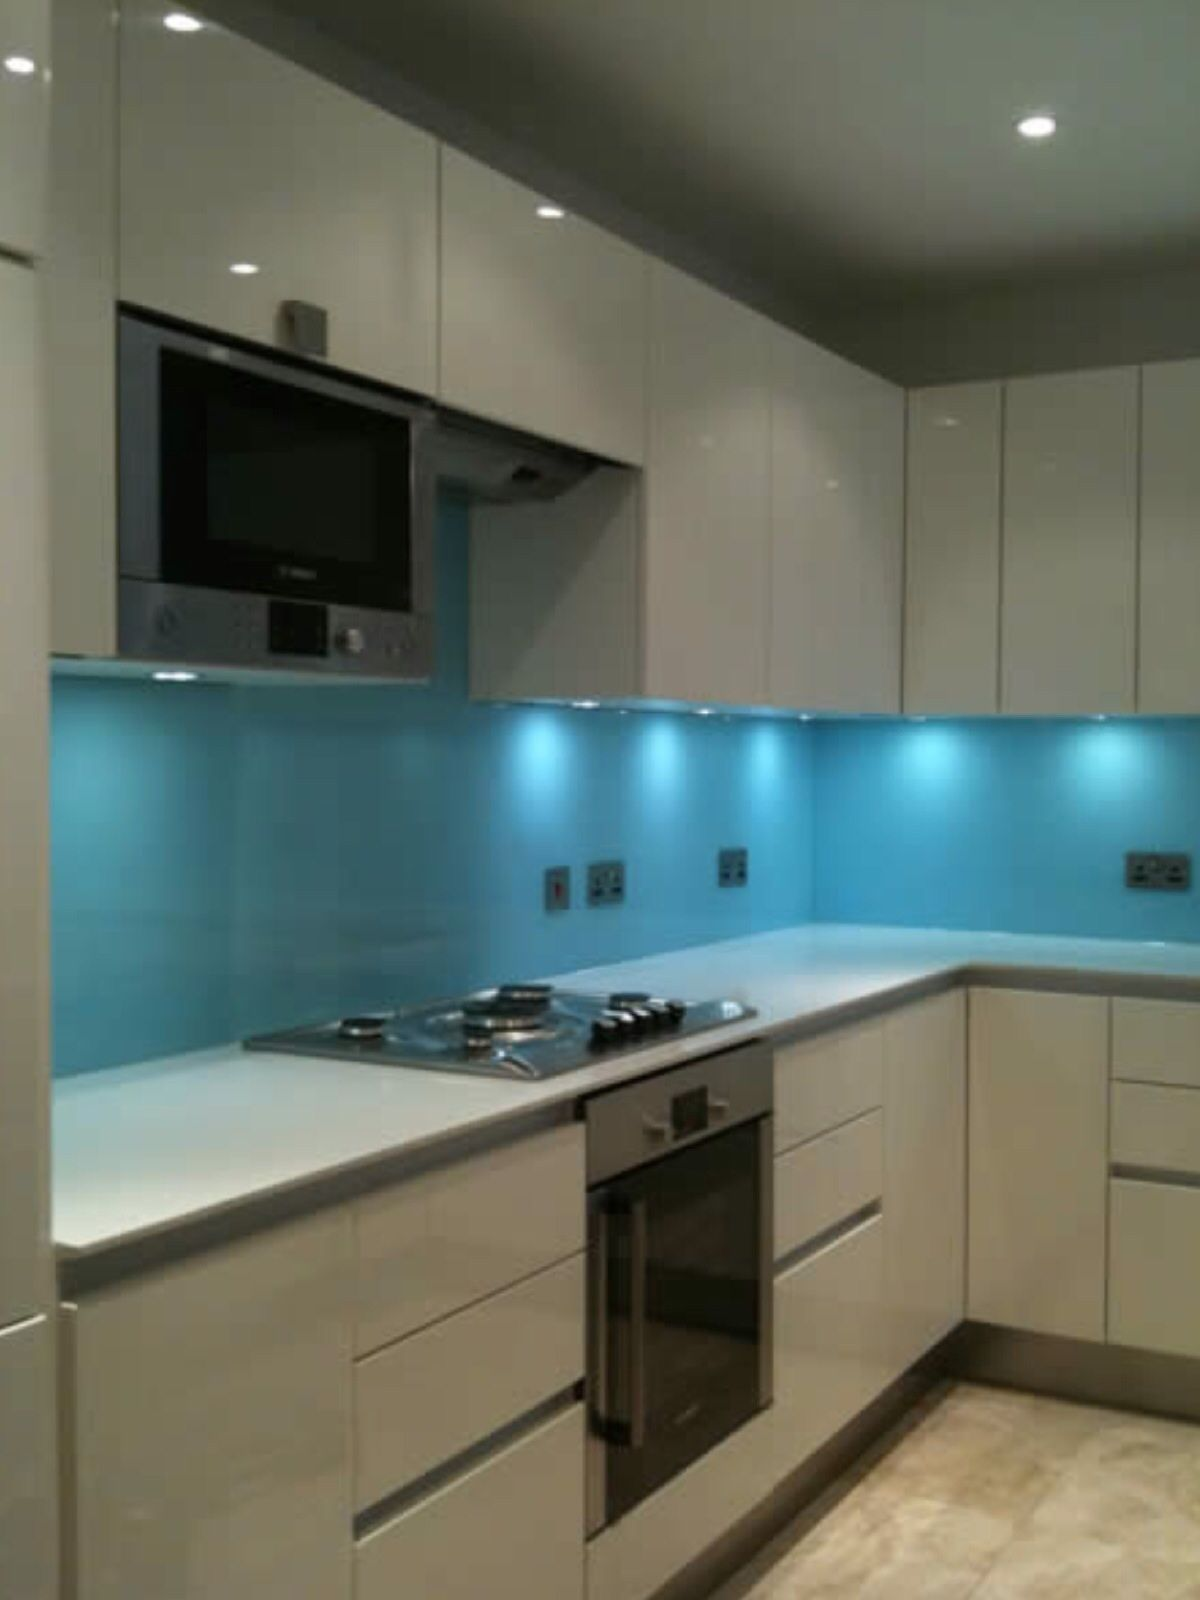 Energy efficient LED downlights bined with colour changing LED